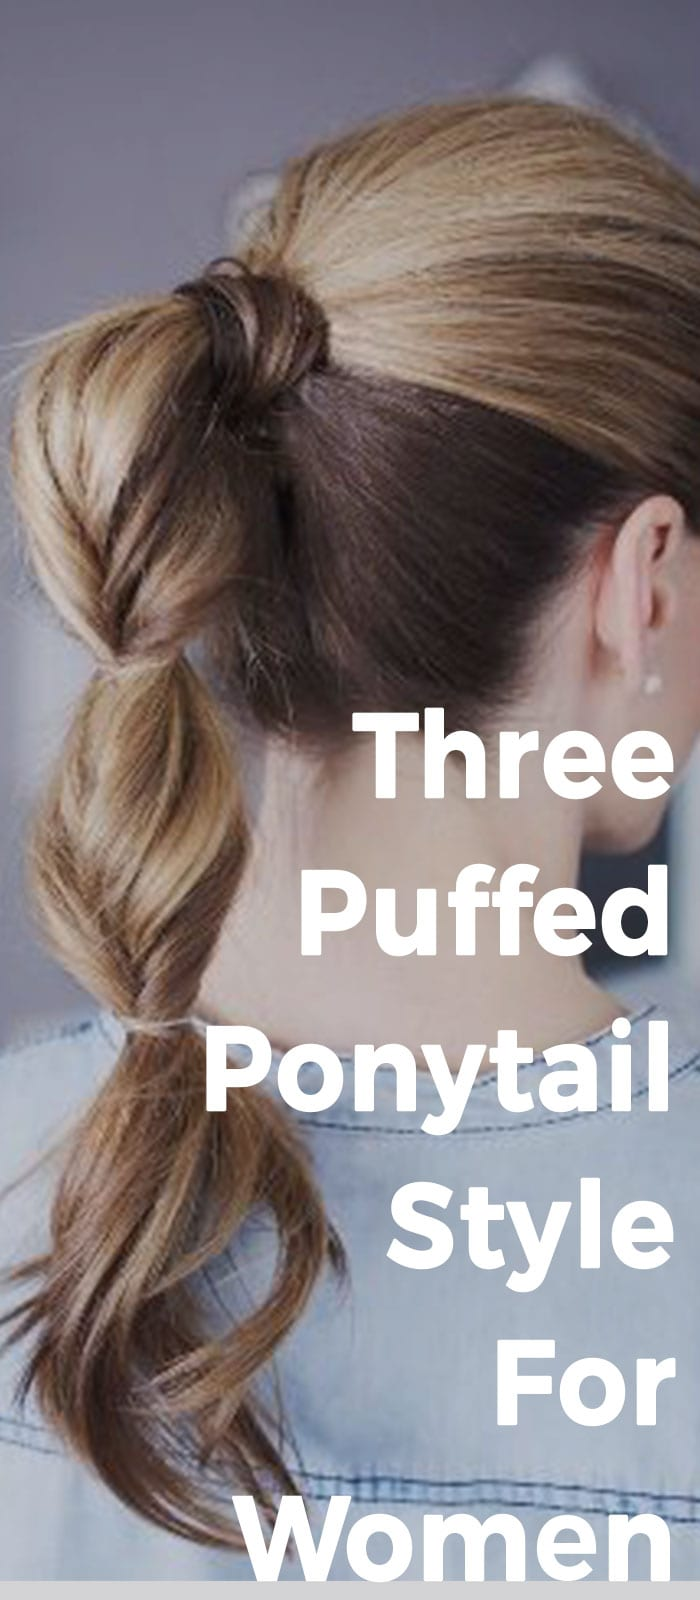 Three Puffed Ponytail Style For Women